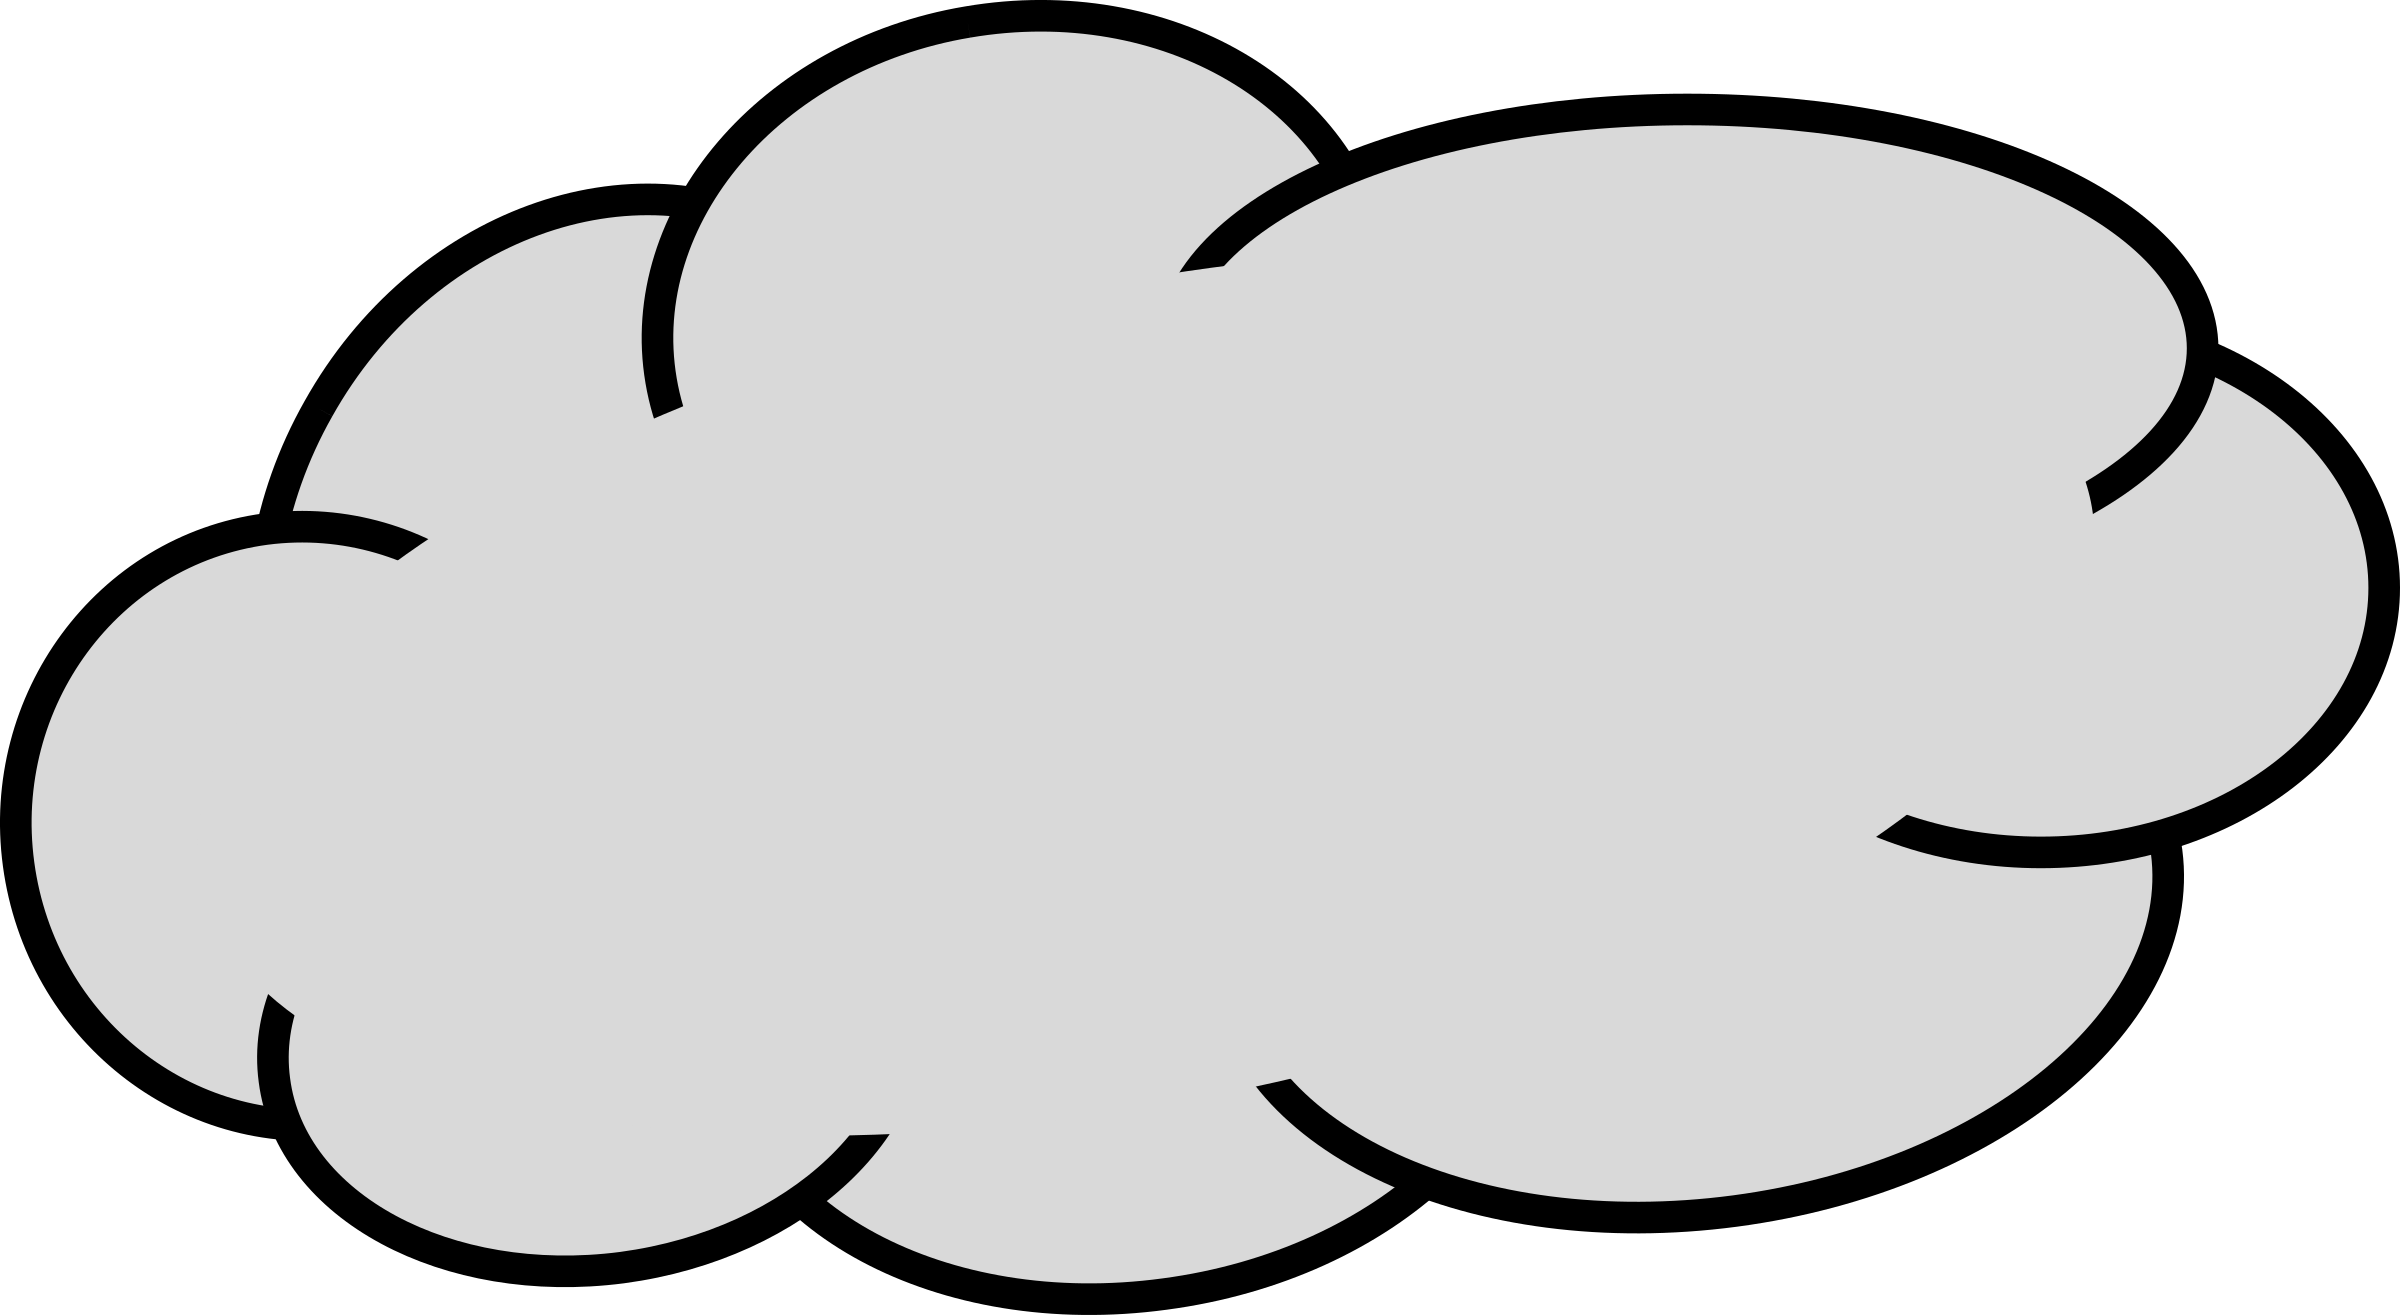 Cloud clip art black and white free clipart images 2 - Cliparting.com